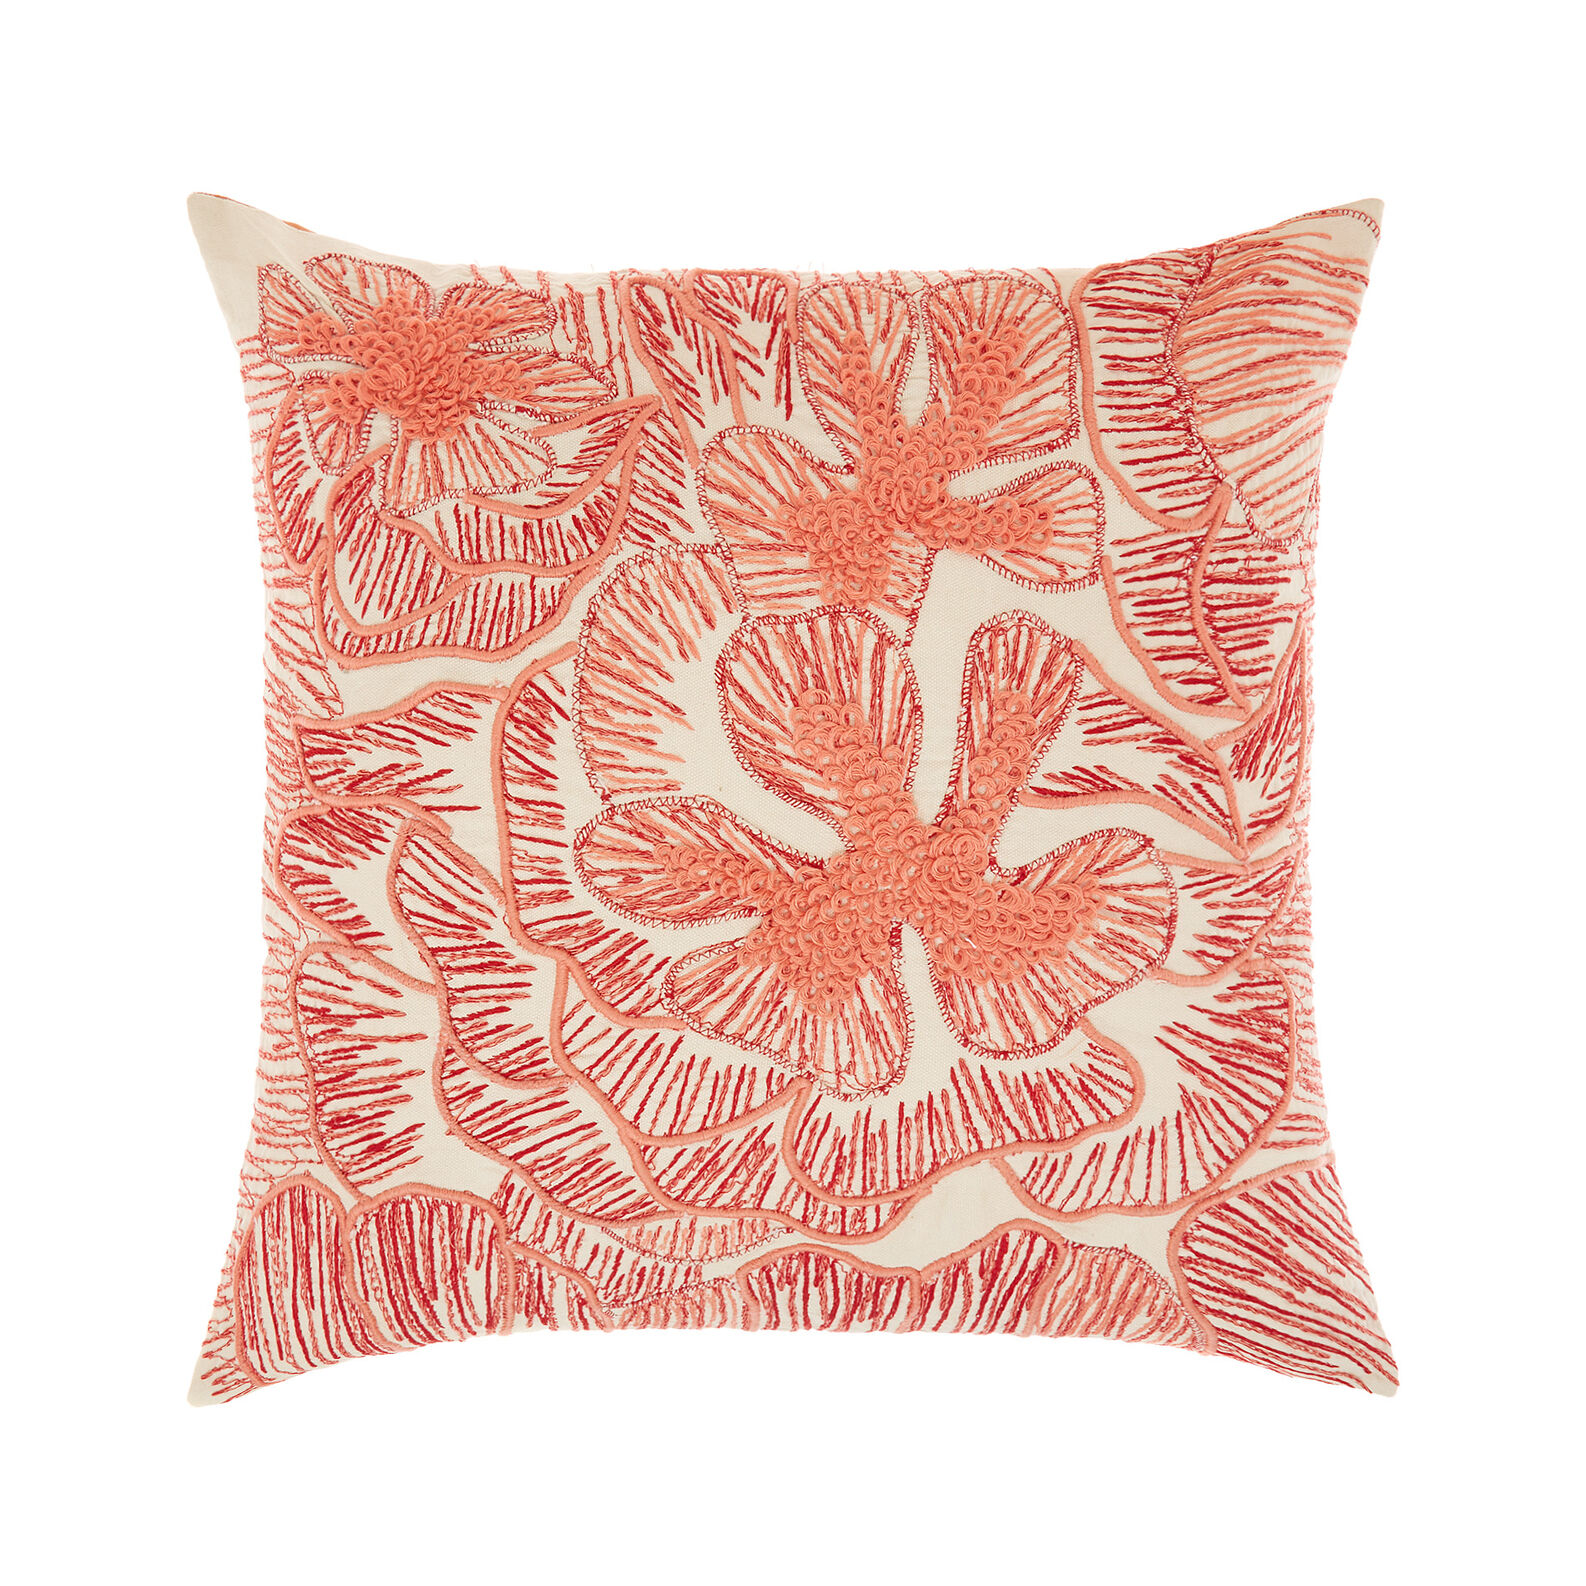 Cushion with floral embroidery